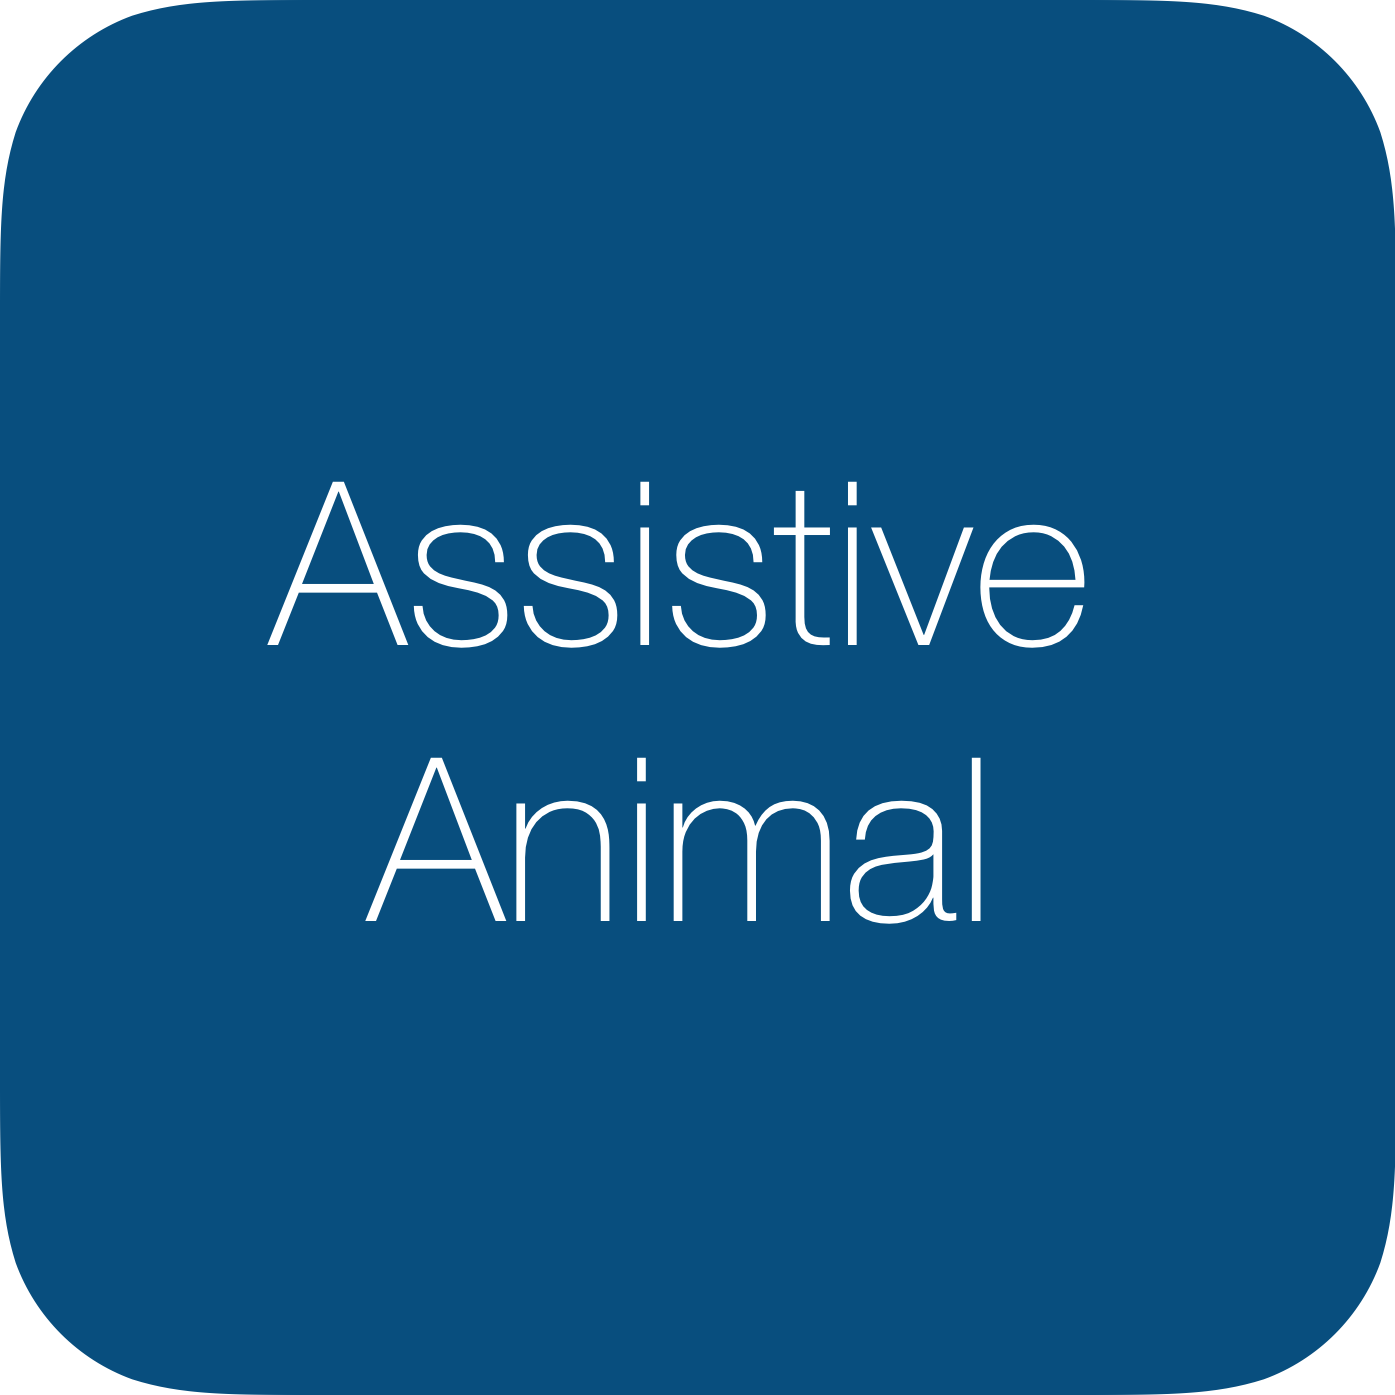 Assistive Animal Policy